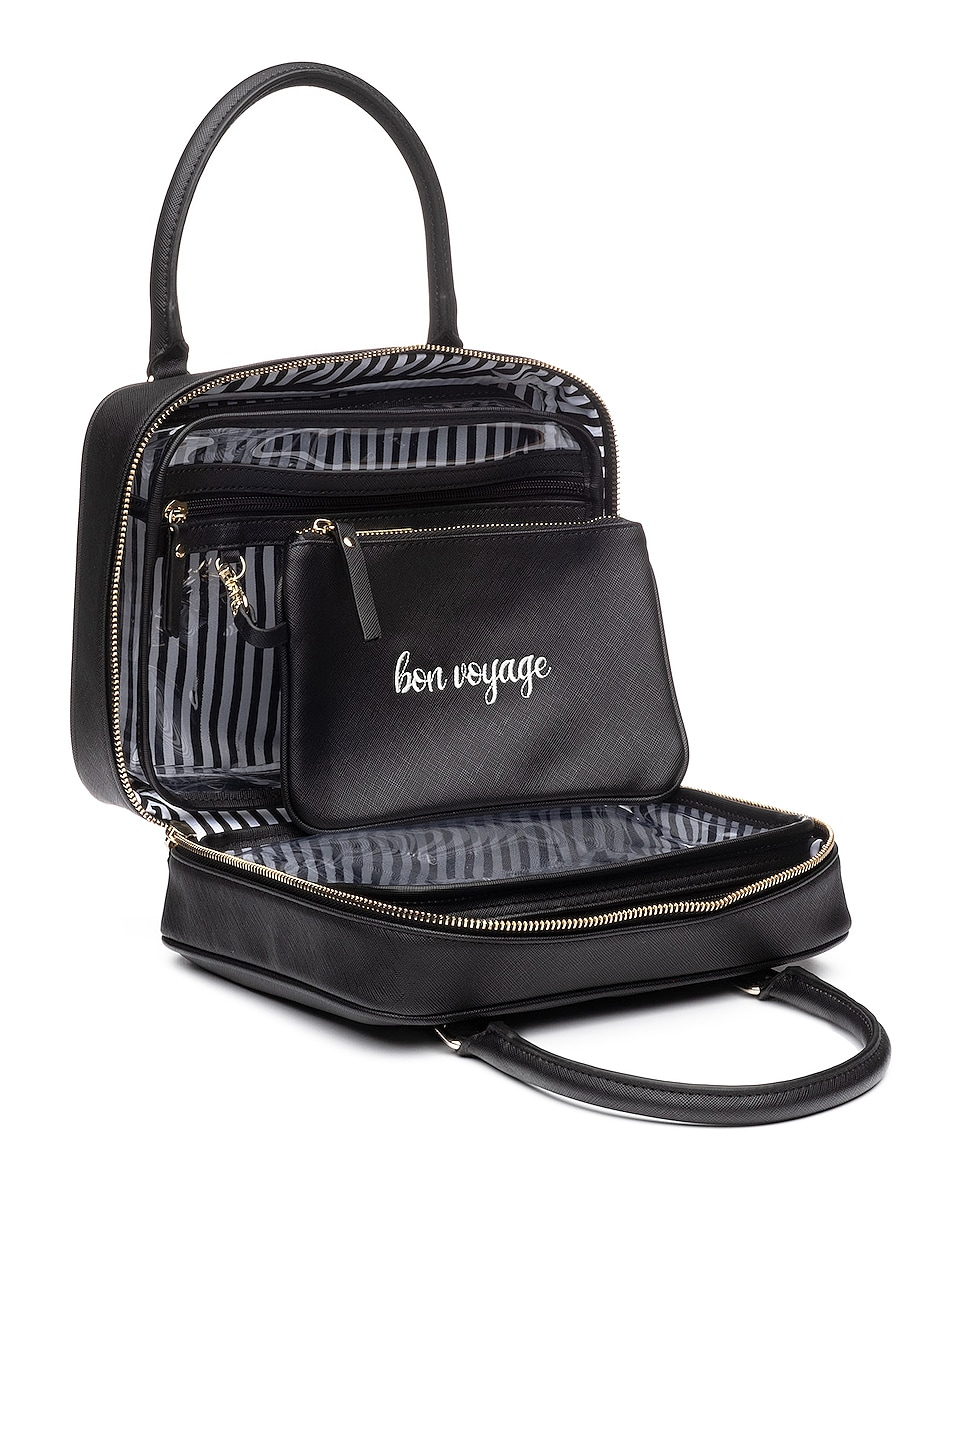 Hudson + Bleecker Preto Voyager Toiletry Bag in Black